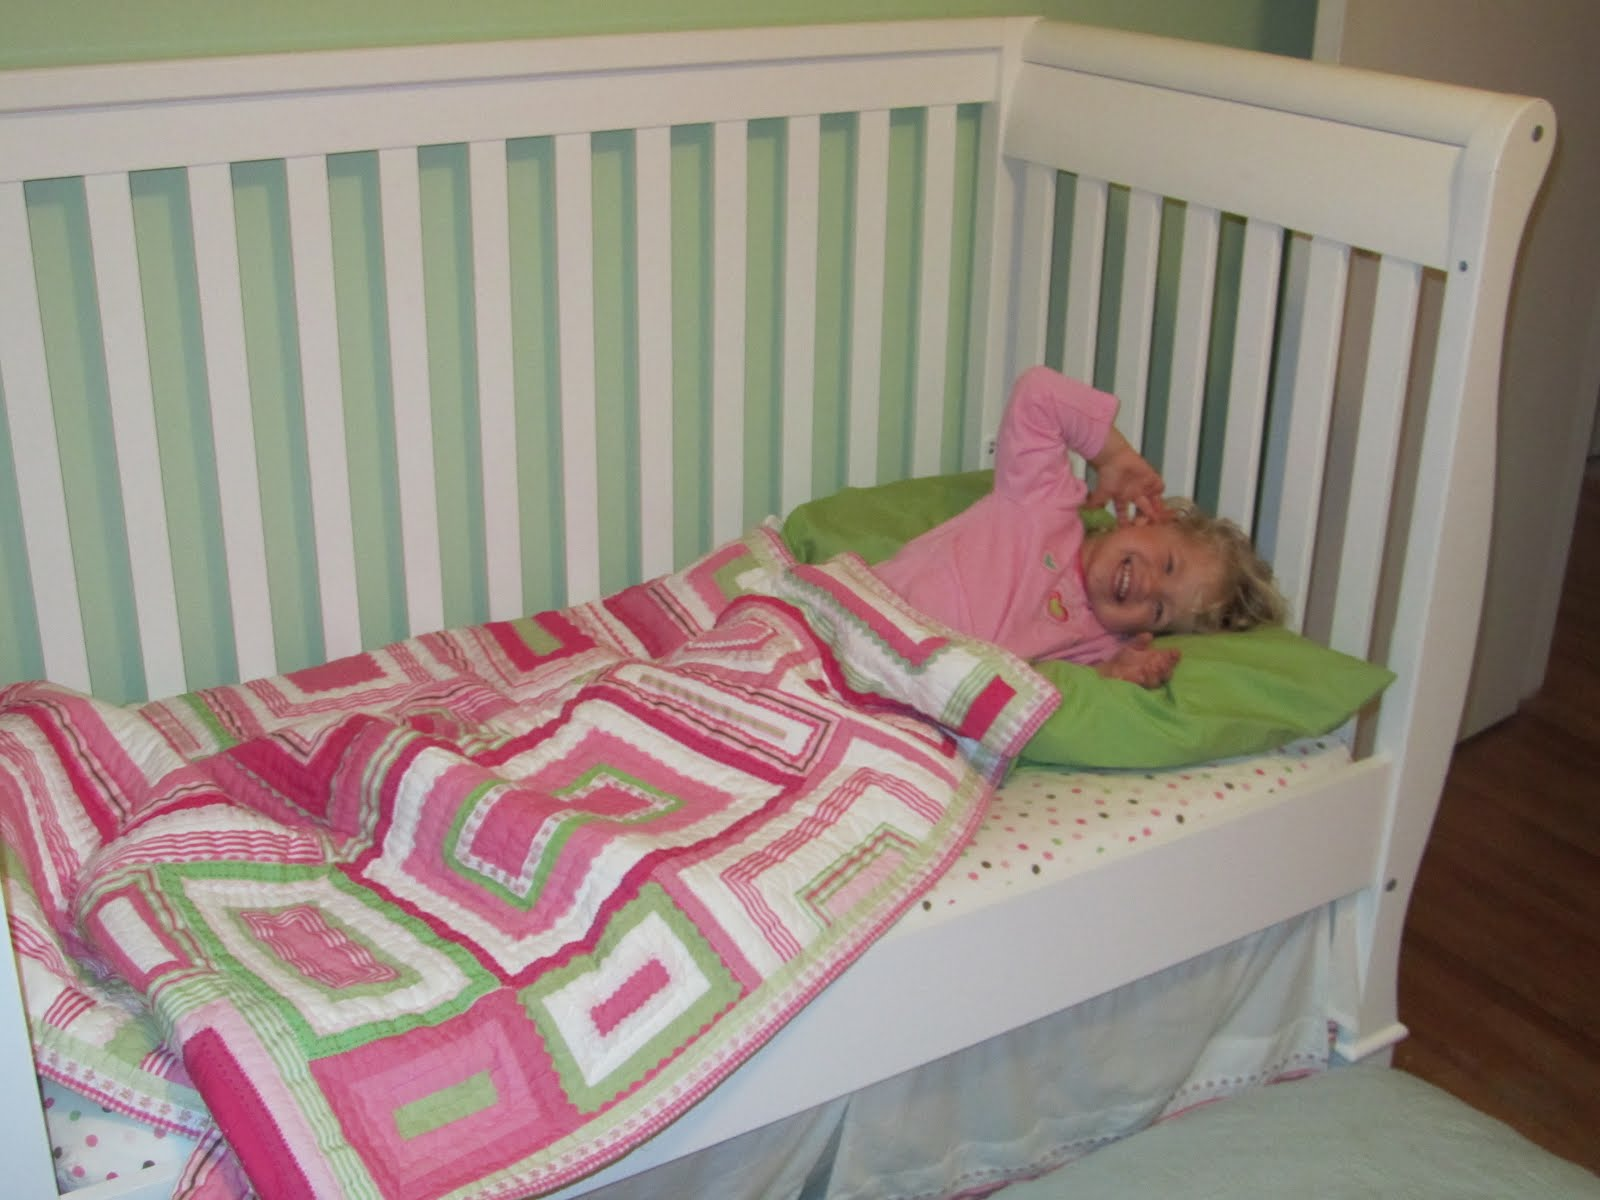 Big Girl Beds All Blacks Quotwittle Big Girl Beds Quot To Quotwilly Biiiiiig Big